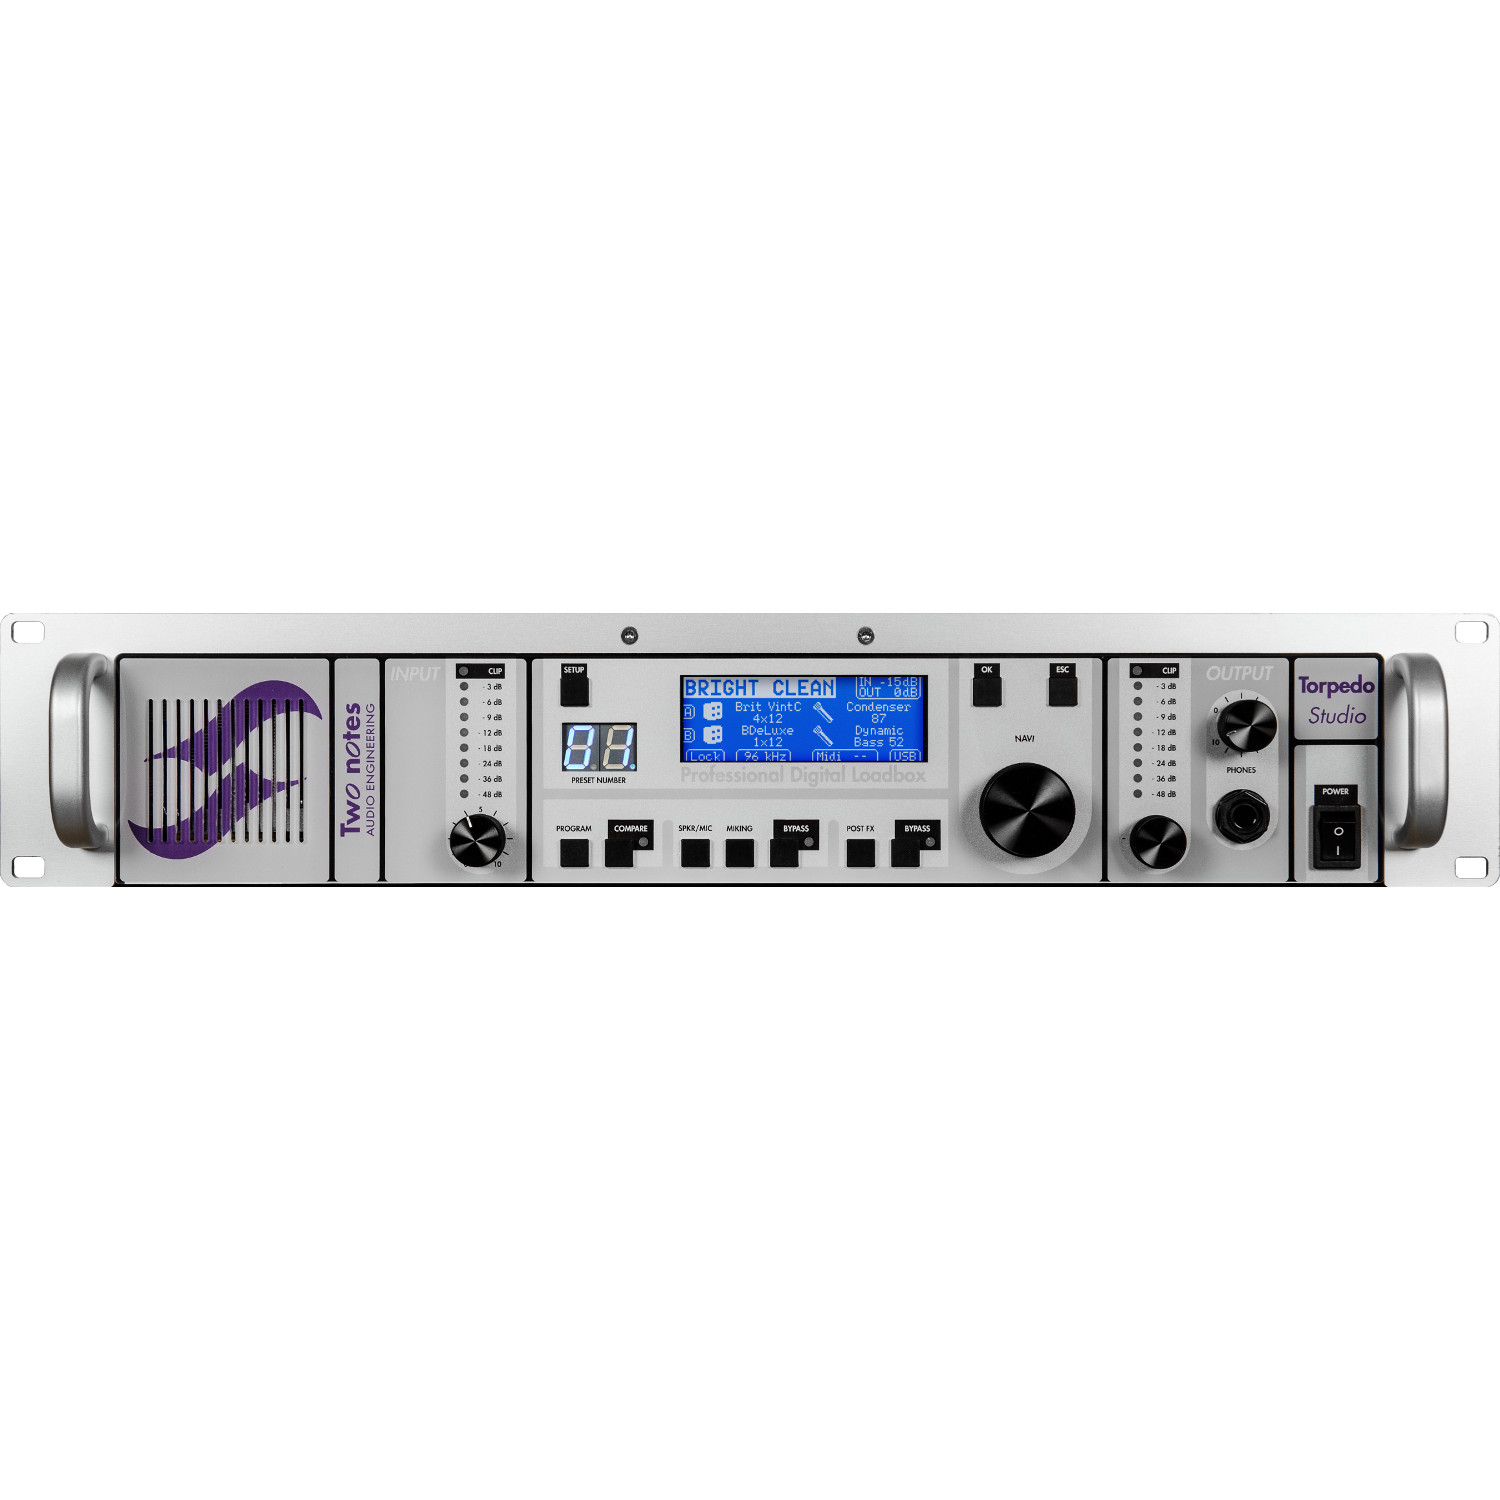 Two Notes Torpedo Studio digital loadbox